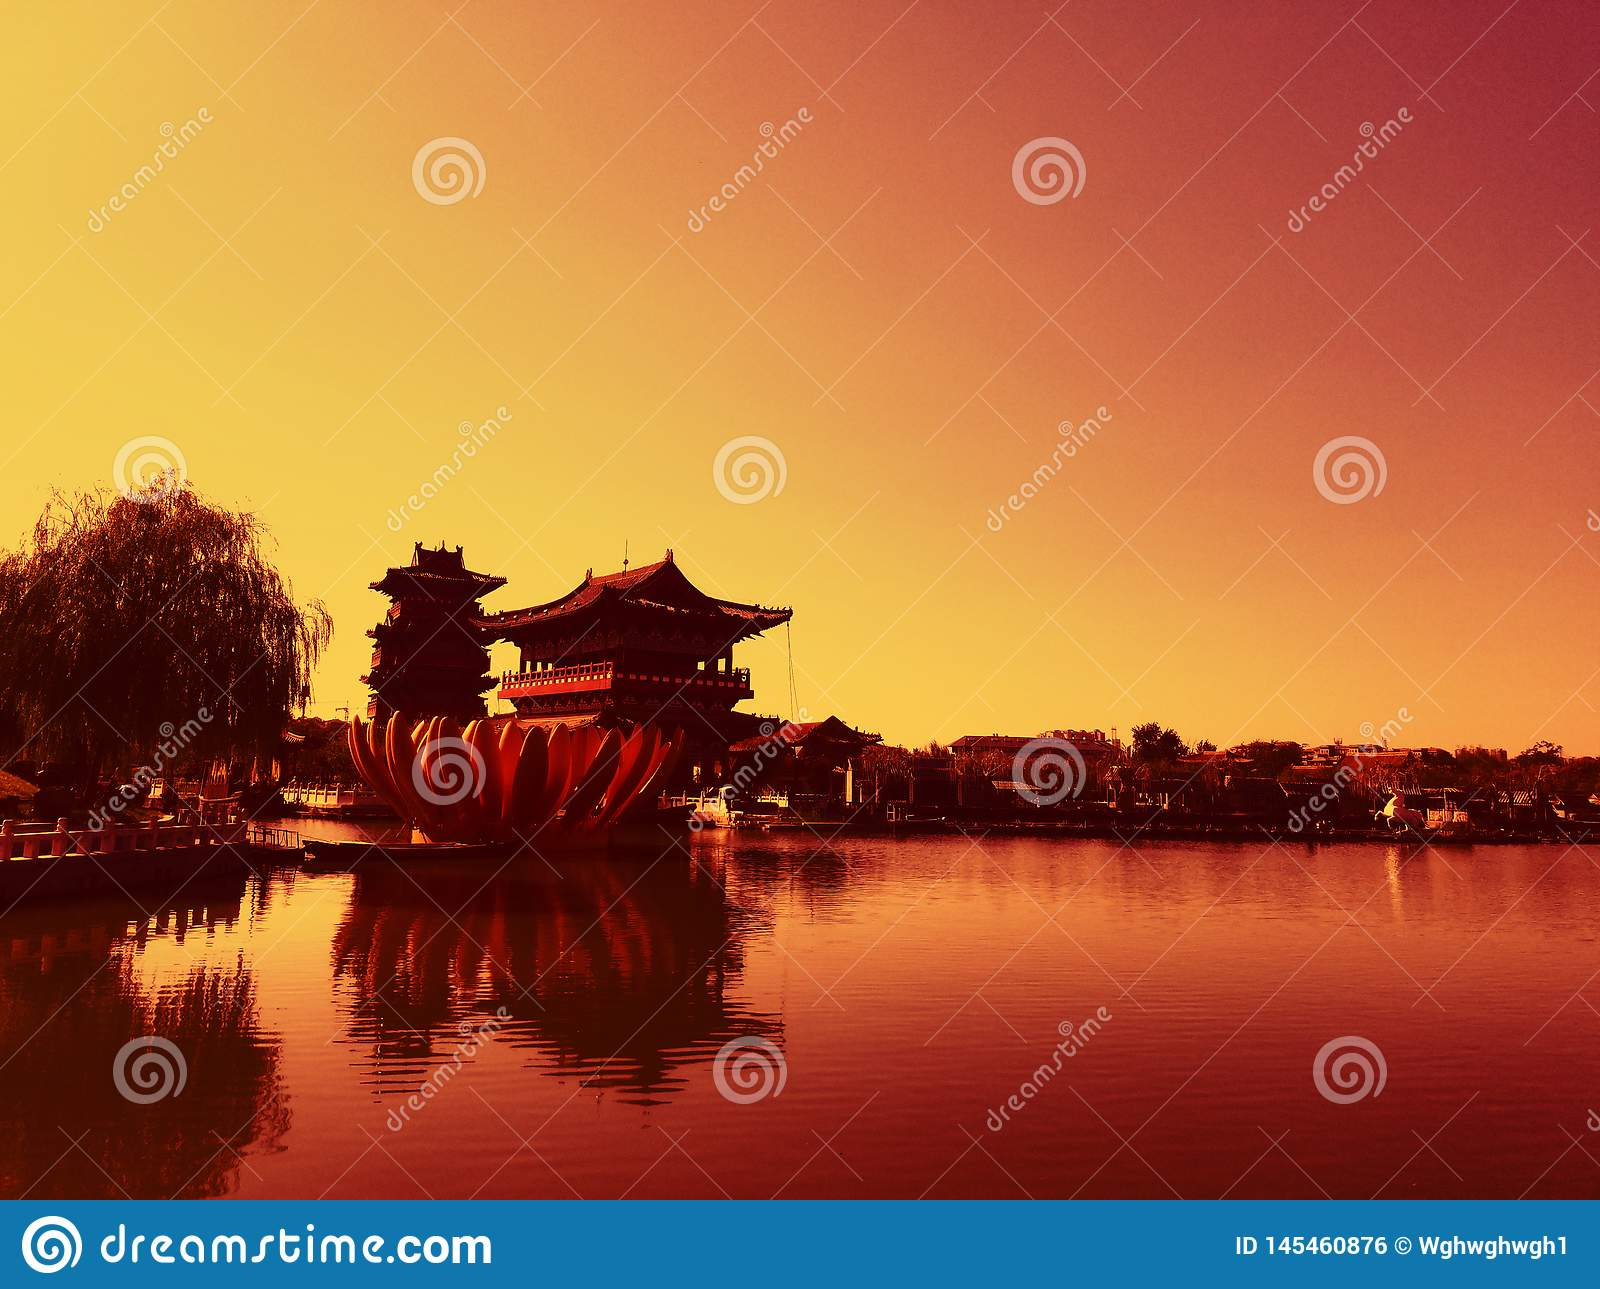 Chinese ancient architecture appreciation